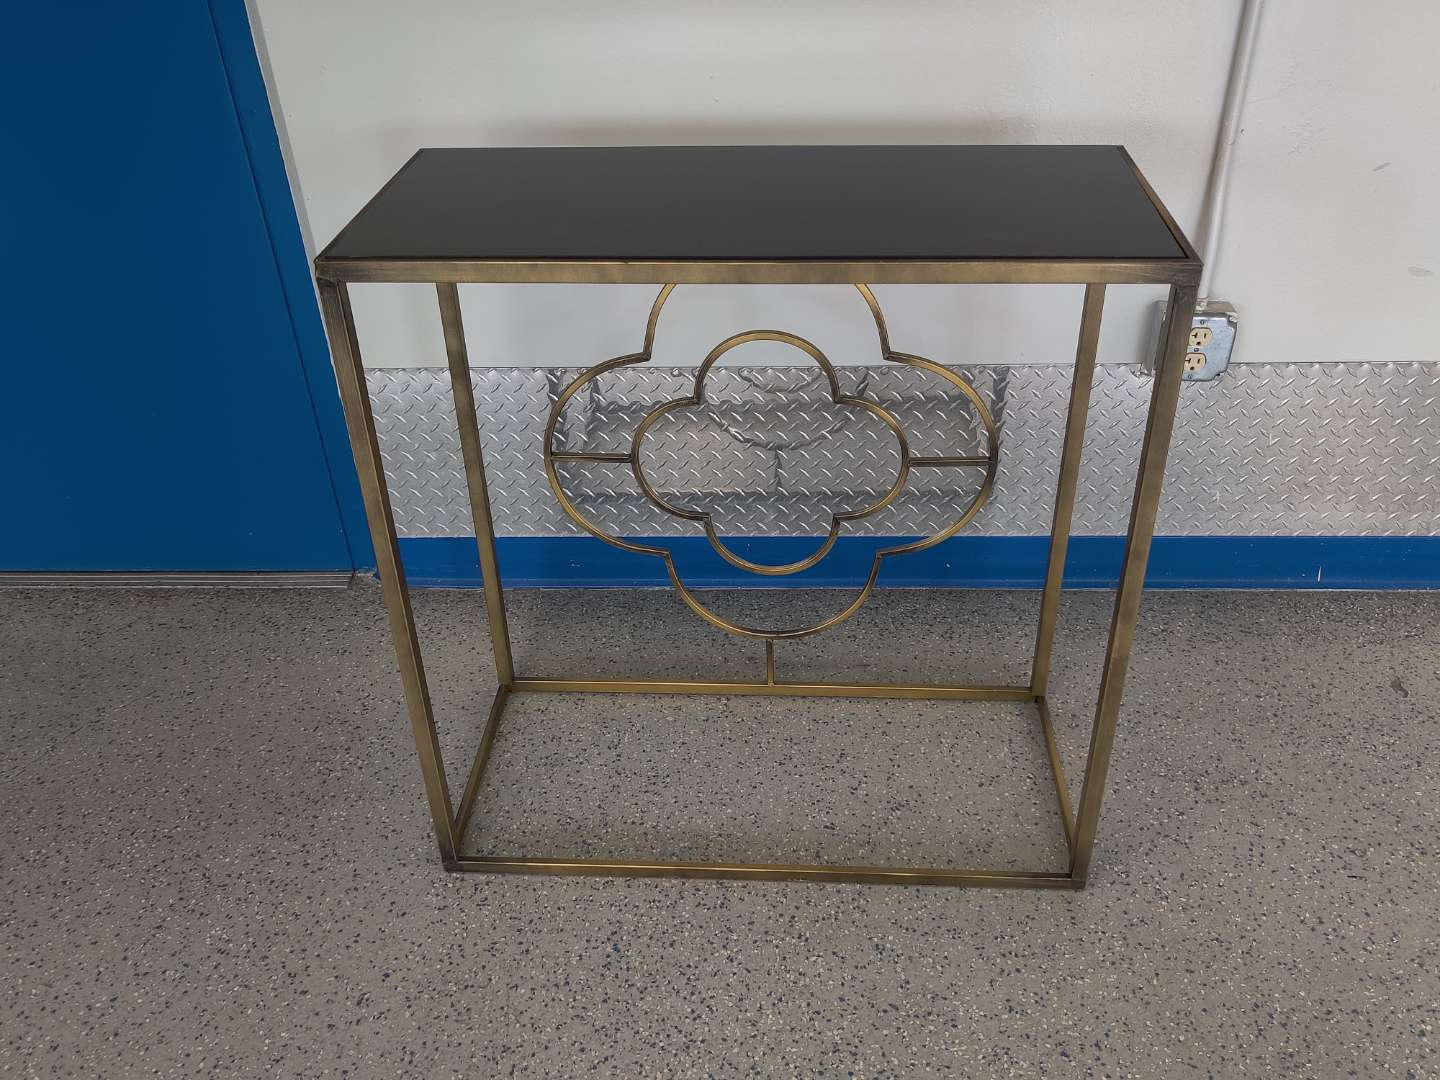 # 152 modernistic sofa table metal with black top 32 inches tall 32 inches wide great condition